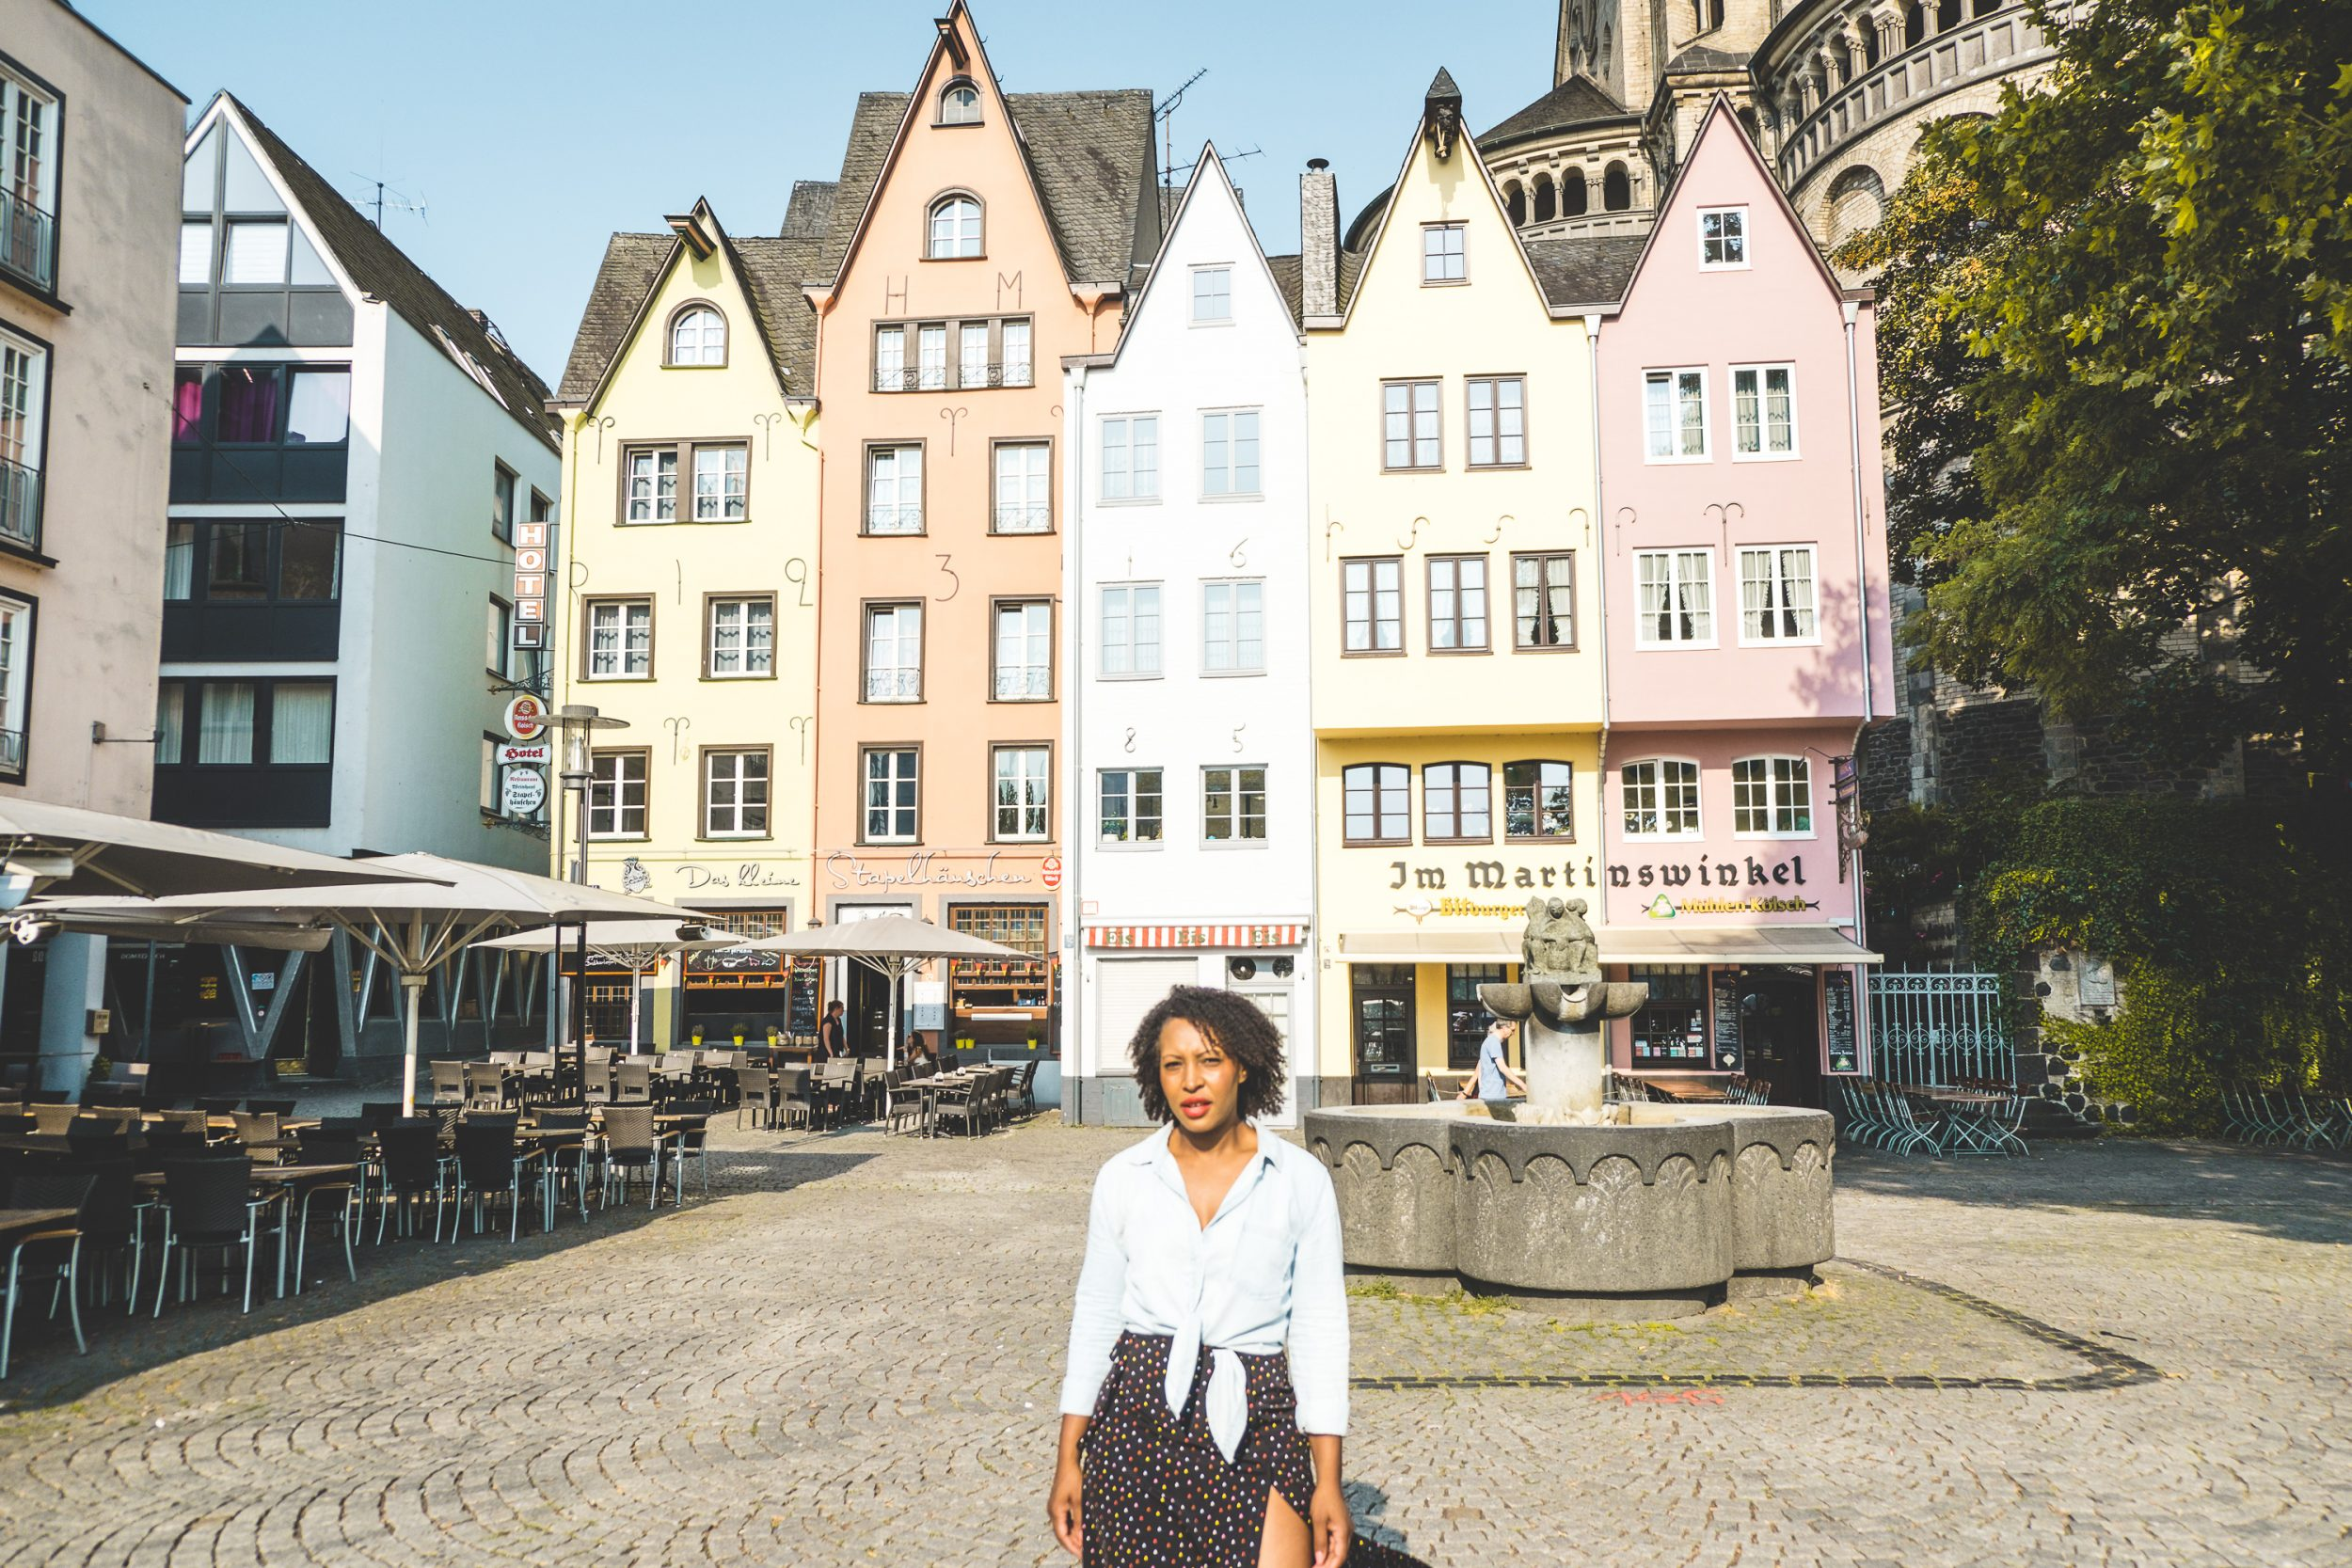 Explore Cologne Old Town - Things to Do in Cologne Germany